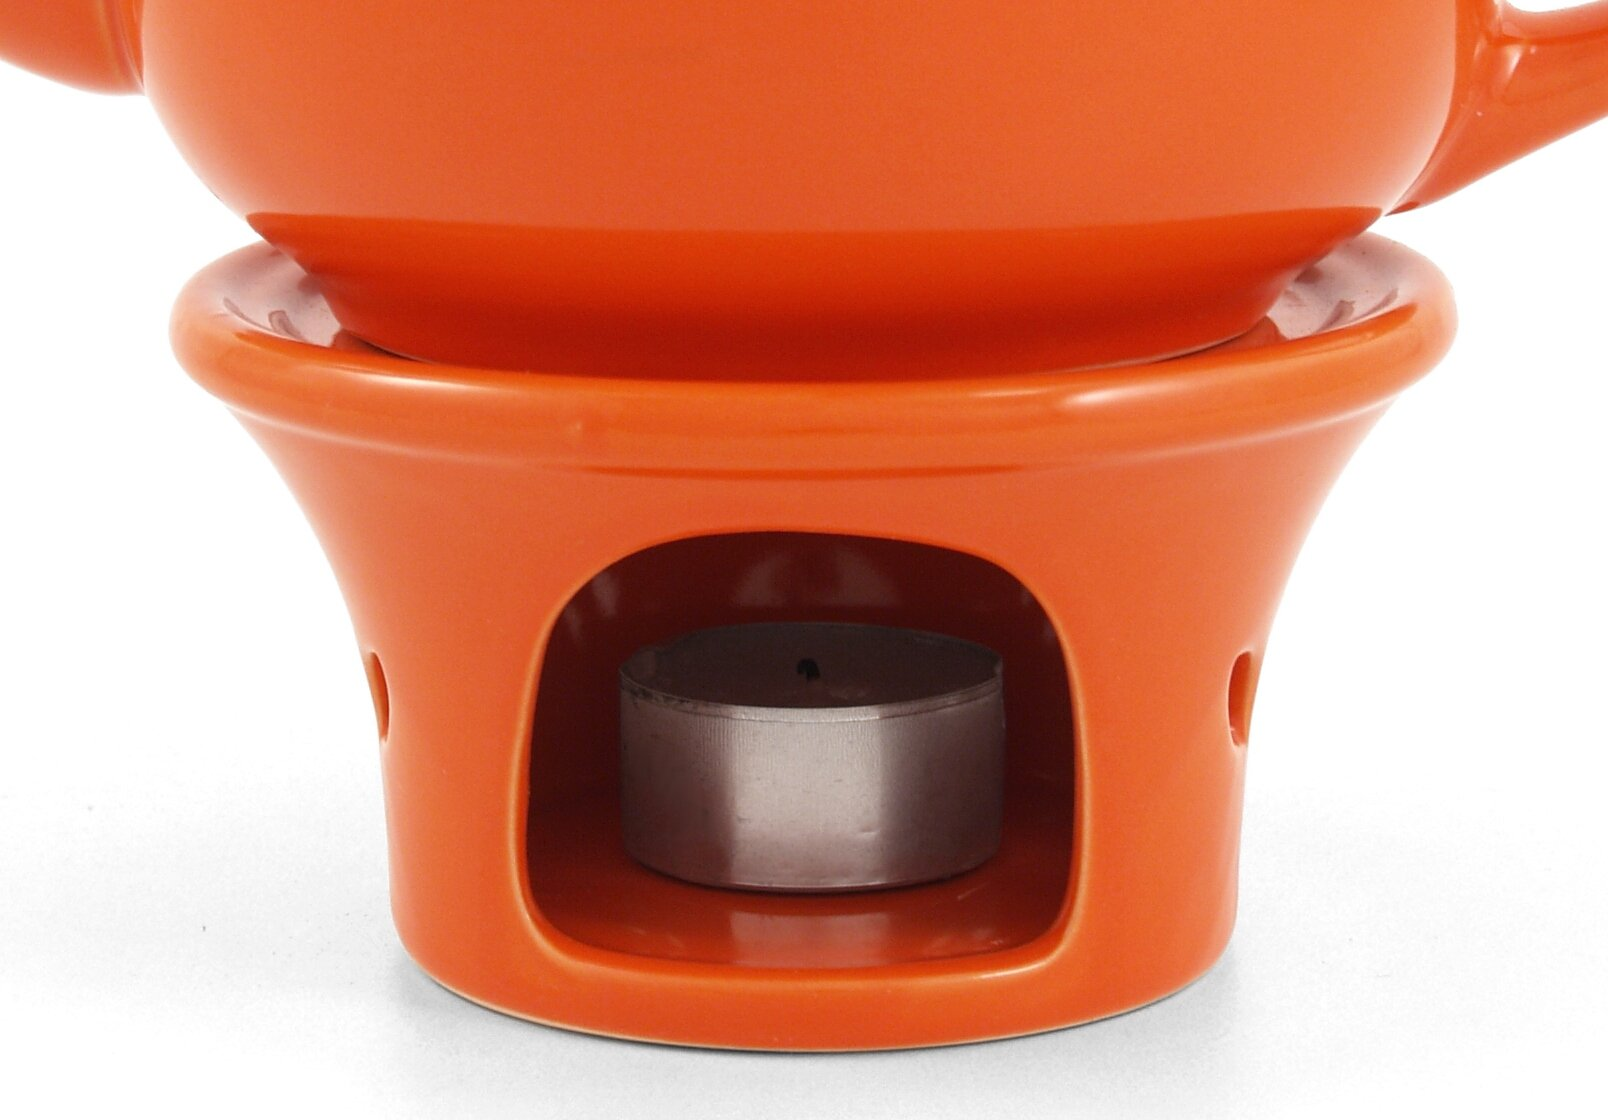 Metropolitan Tea Orange Ceramic Teapot Warmer